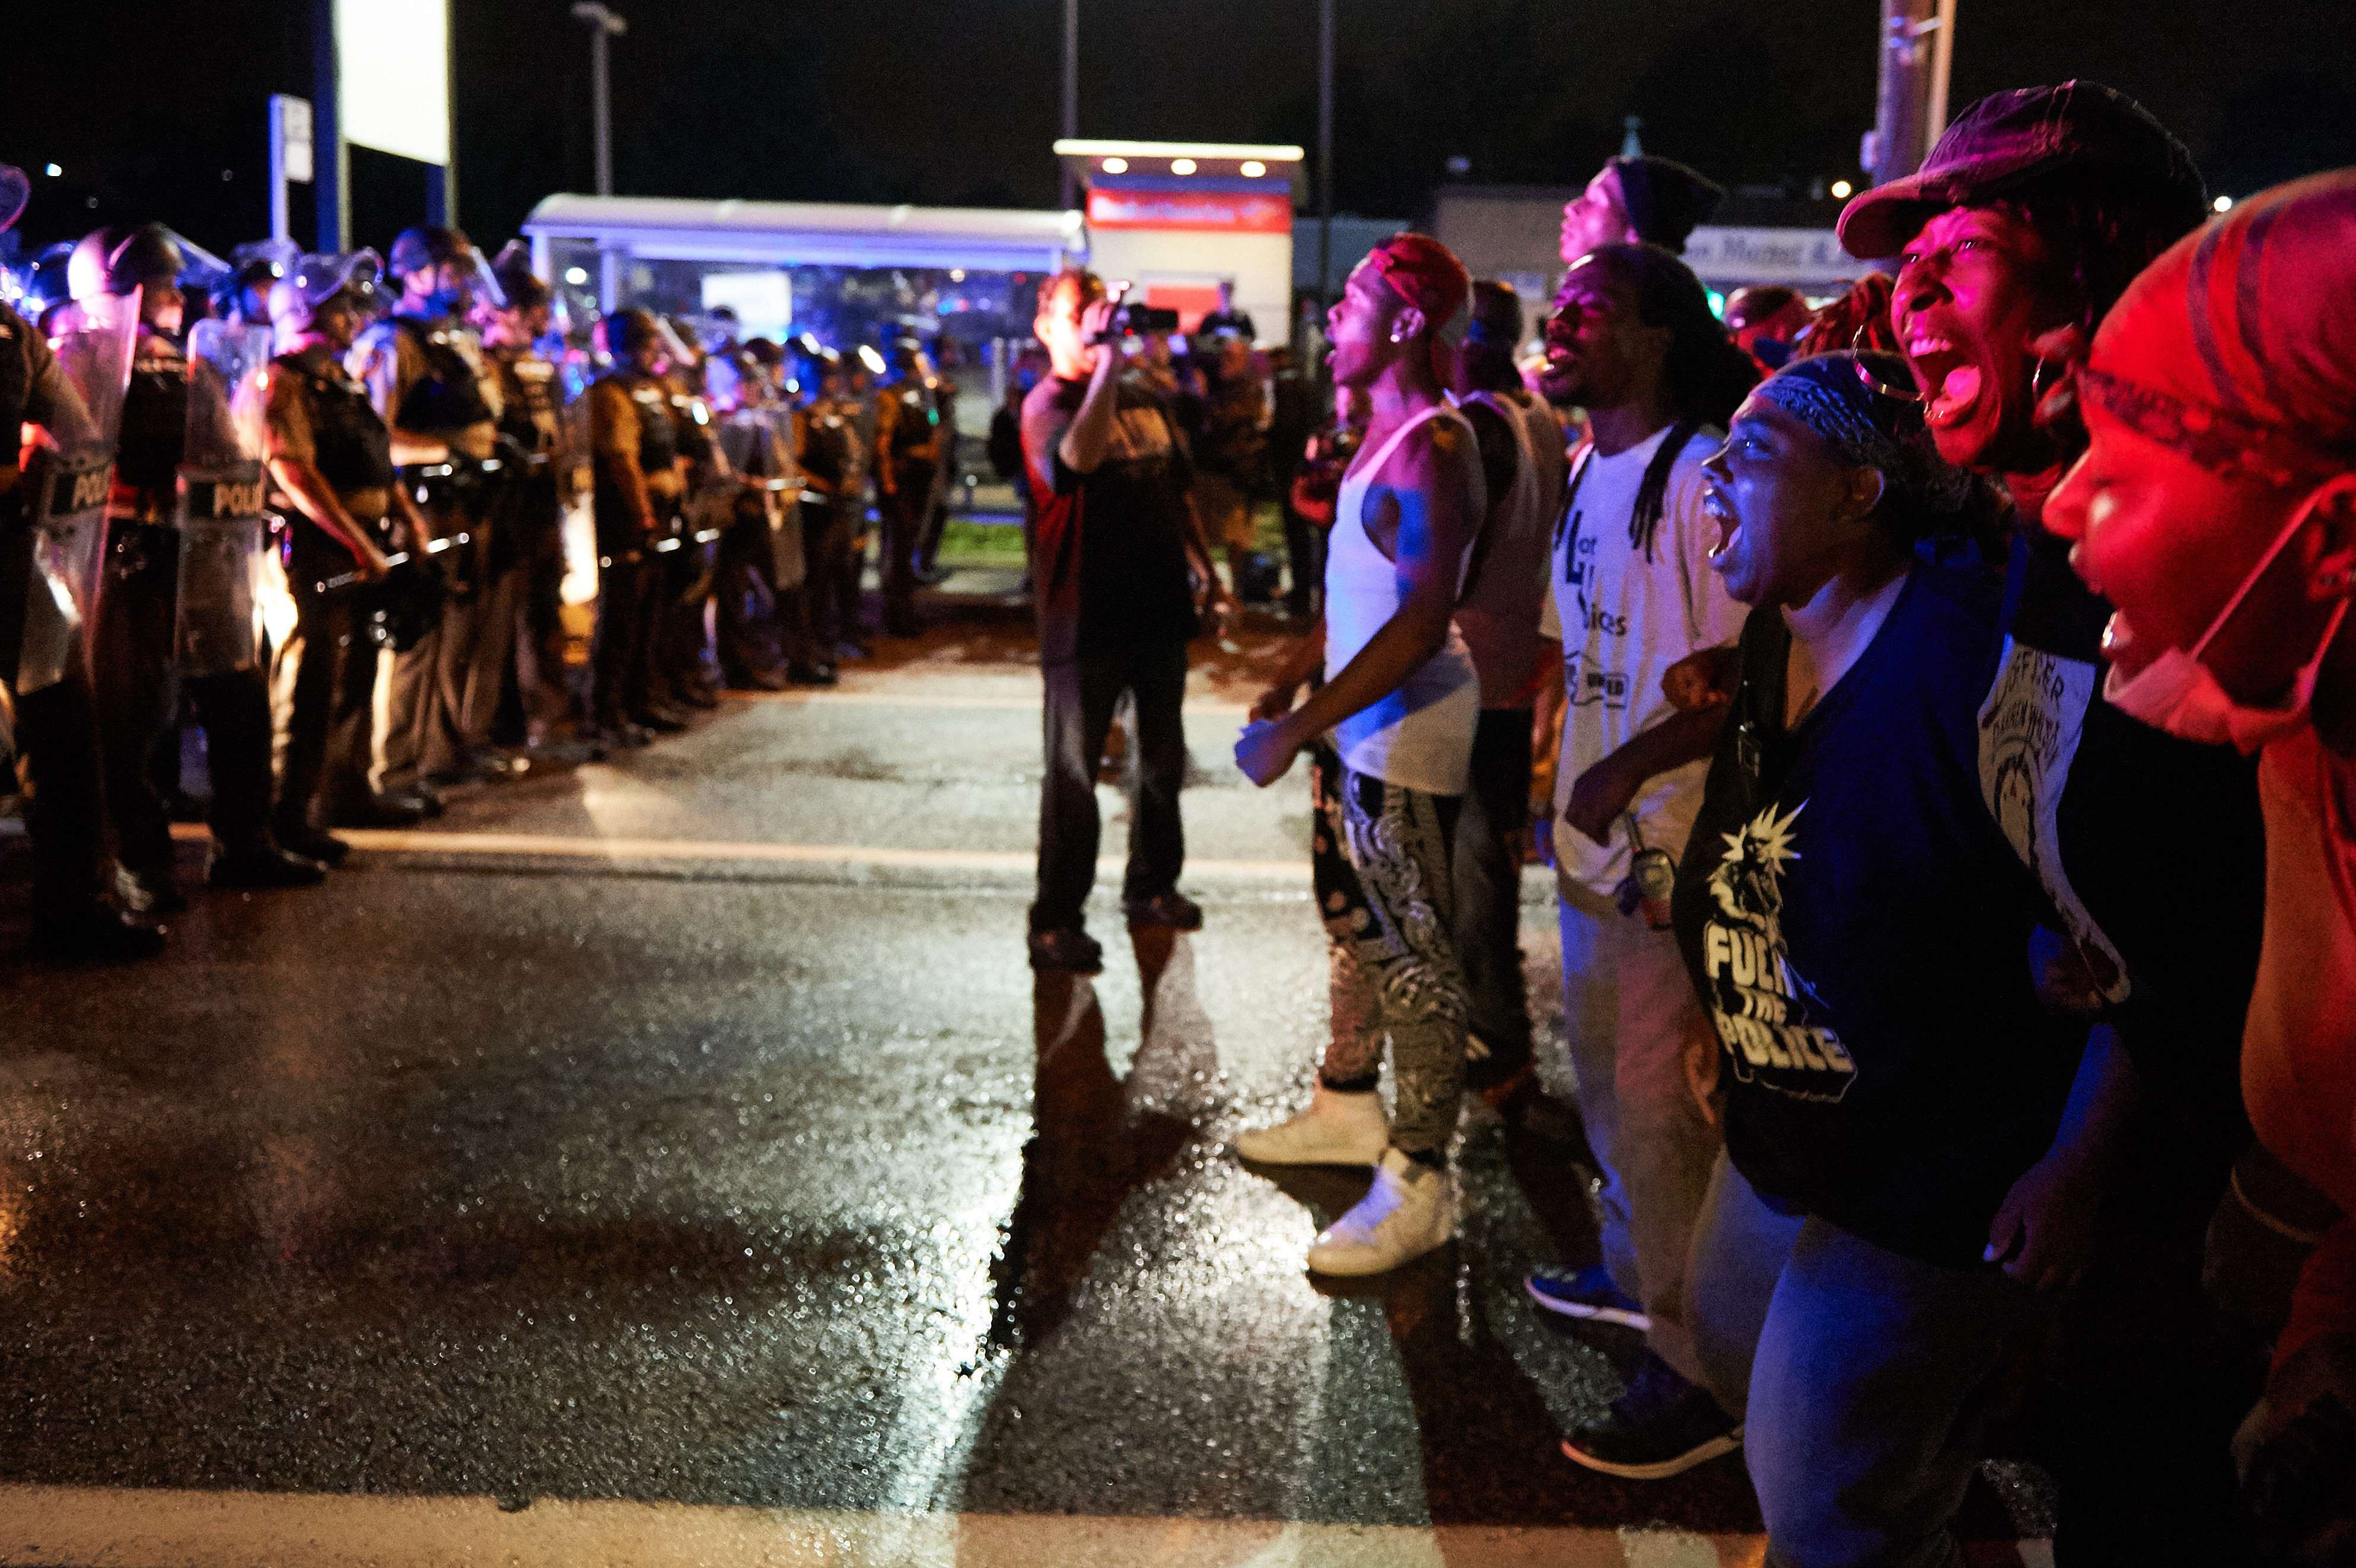 A group of demonstrators yell in front of police officers during a protest march on West Florissant Avenue in Ferguson, Mo. on August 9, 2015.